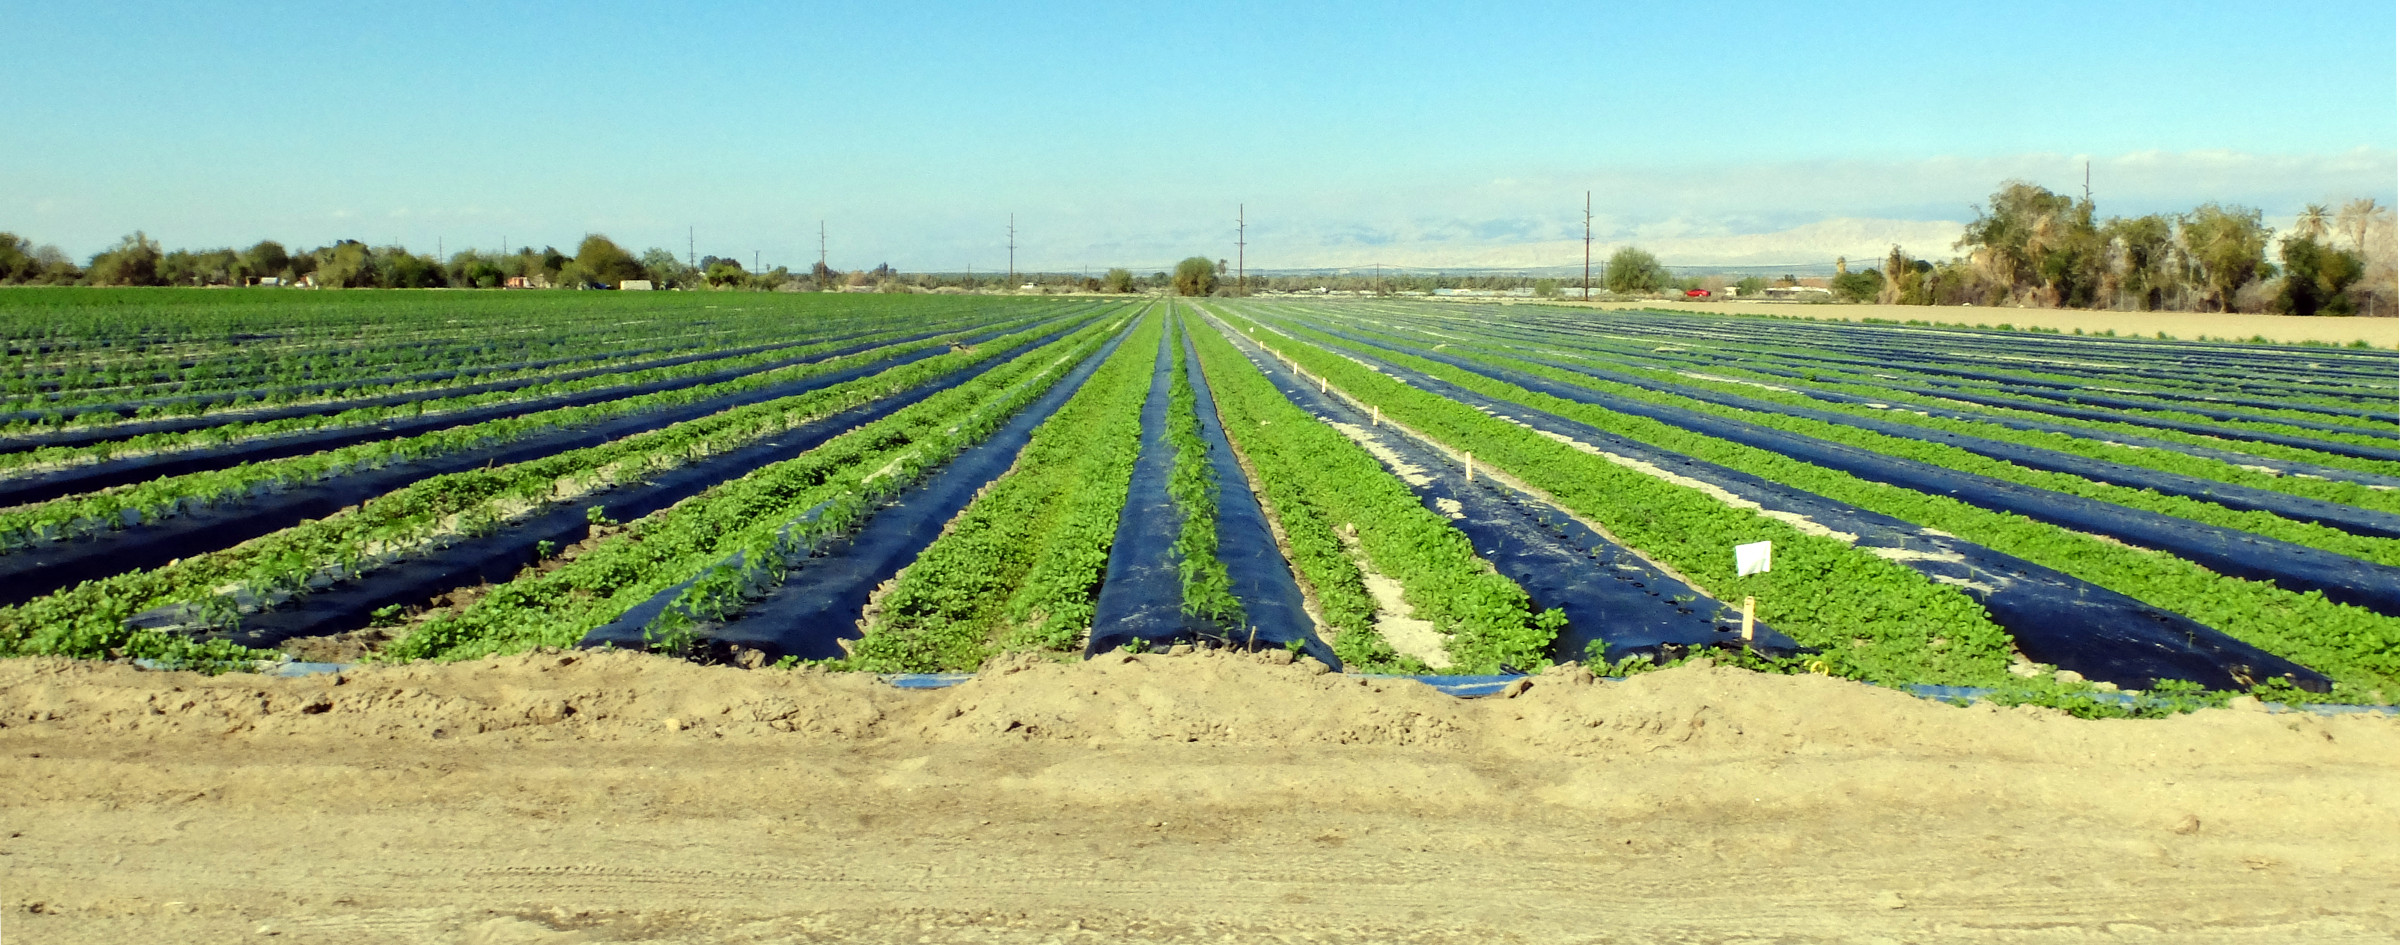 Agricultural field in southern California, in the desert near the Salton Sea